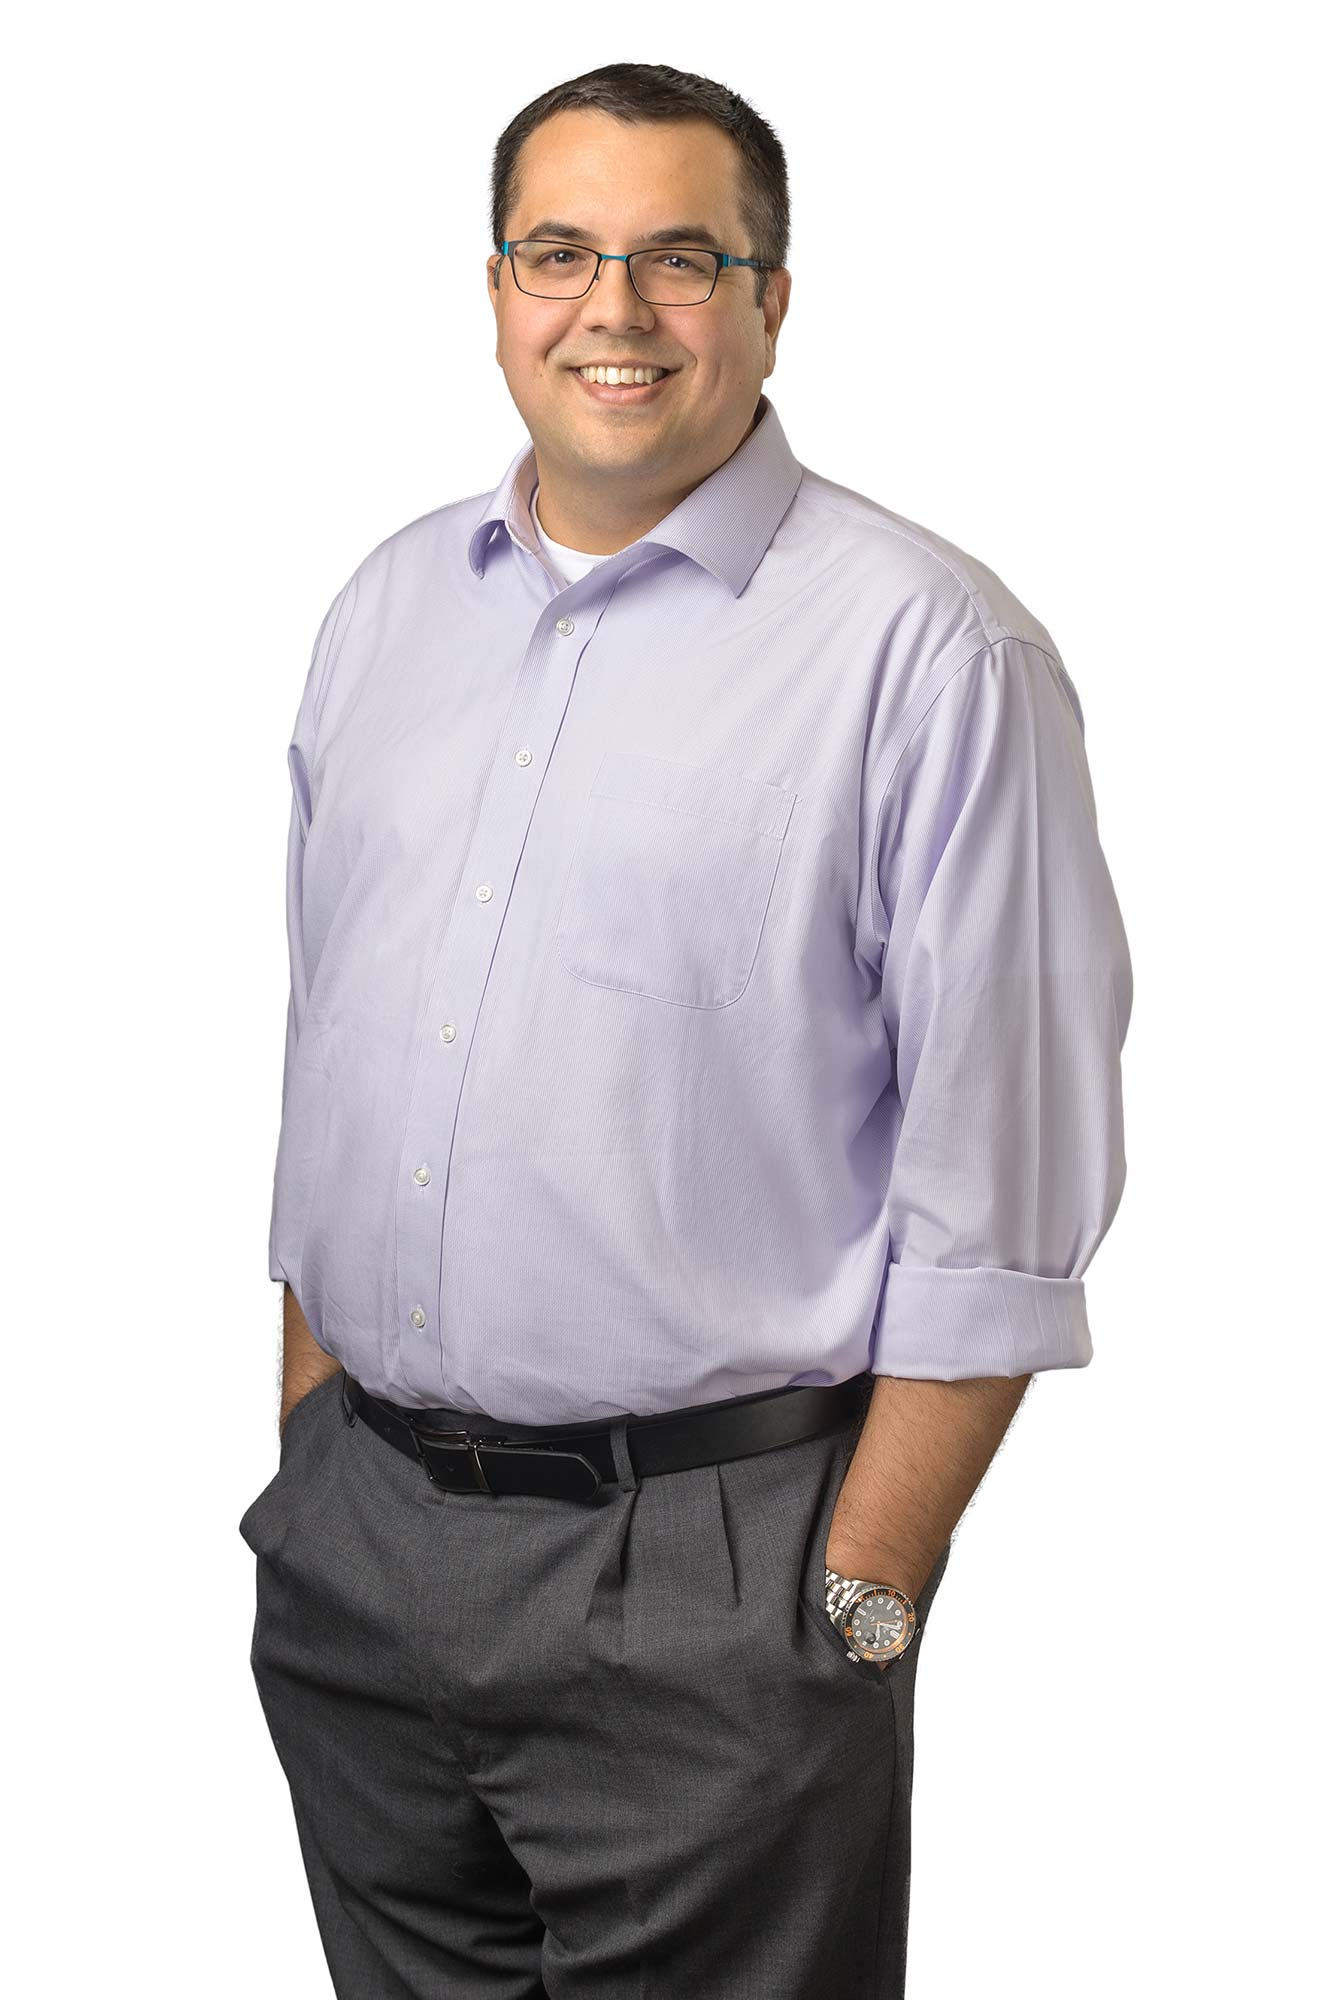 Jamil Hossain, Project Manager